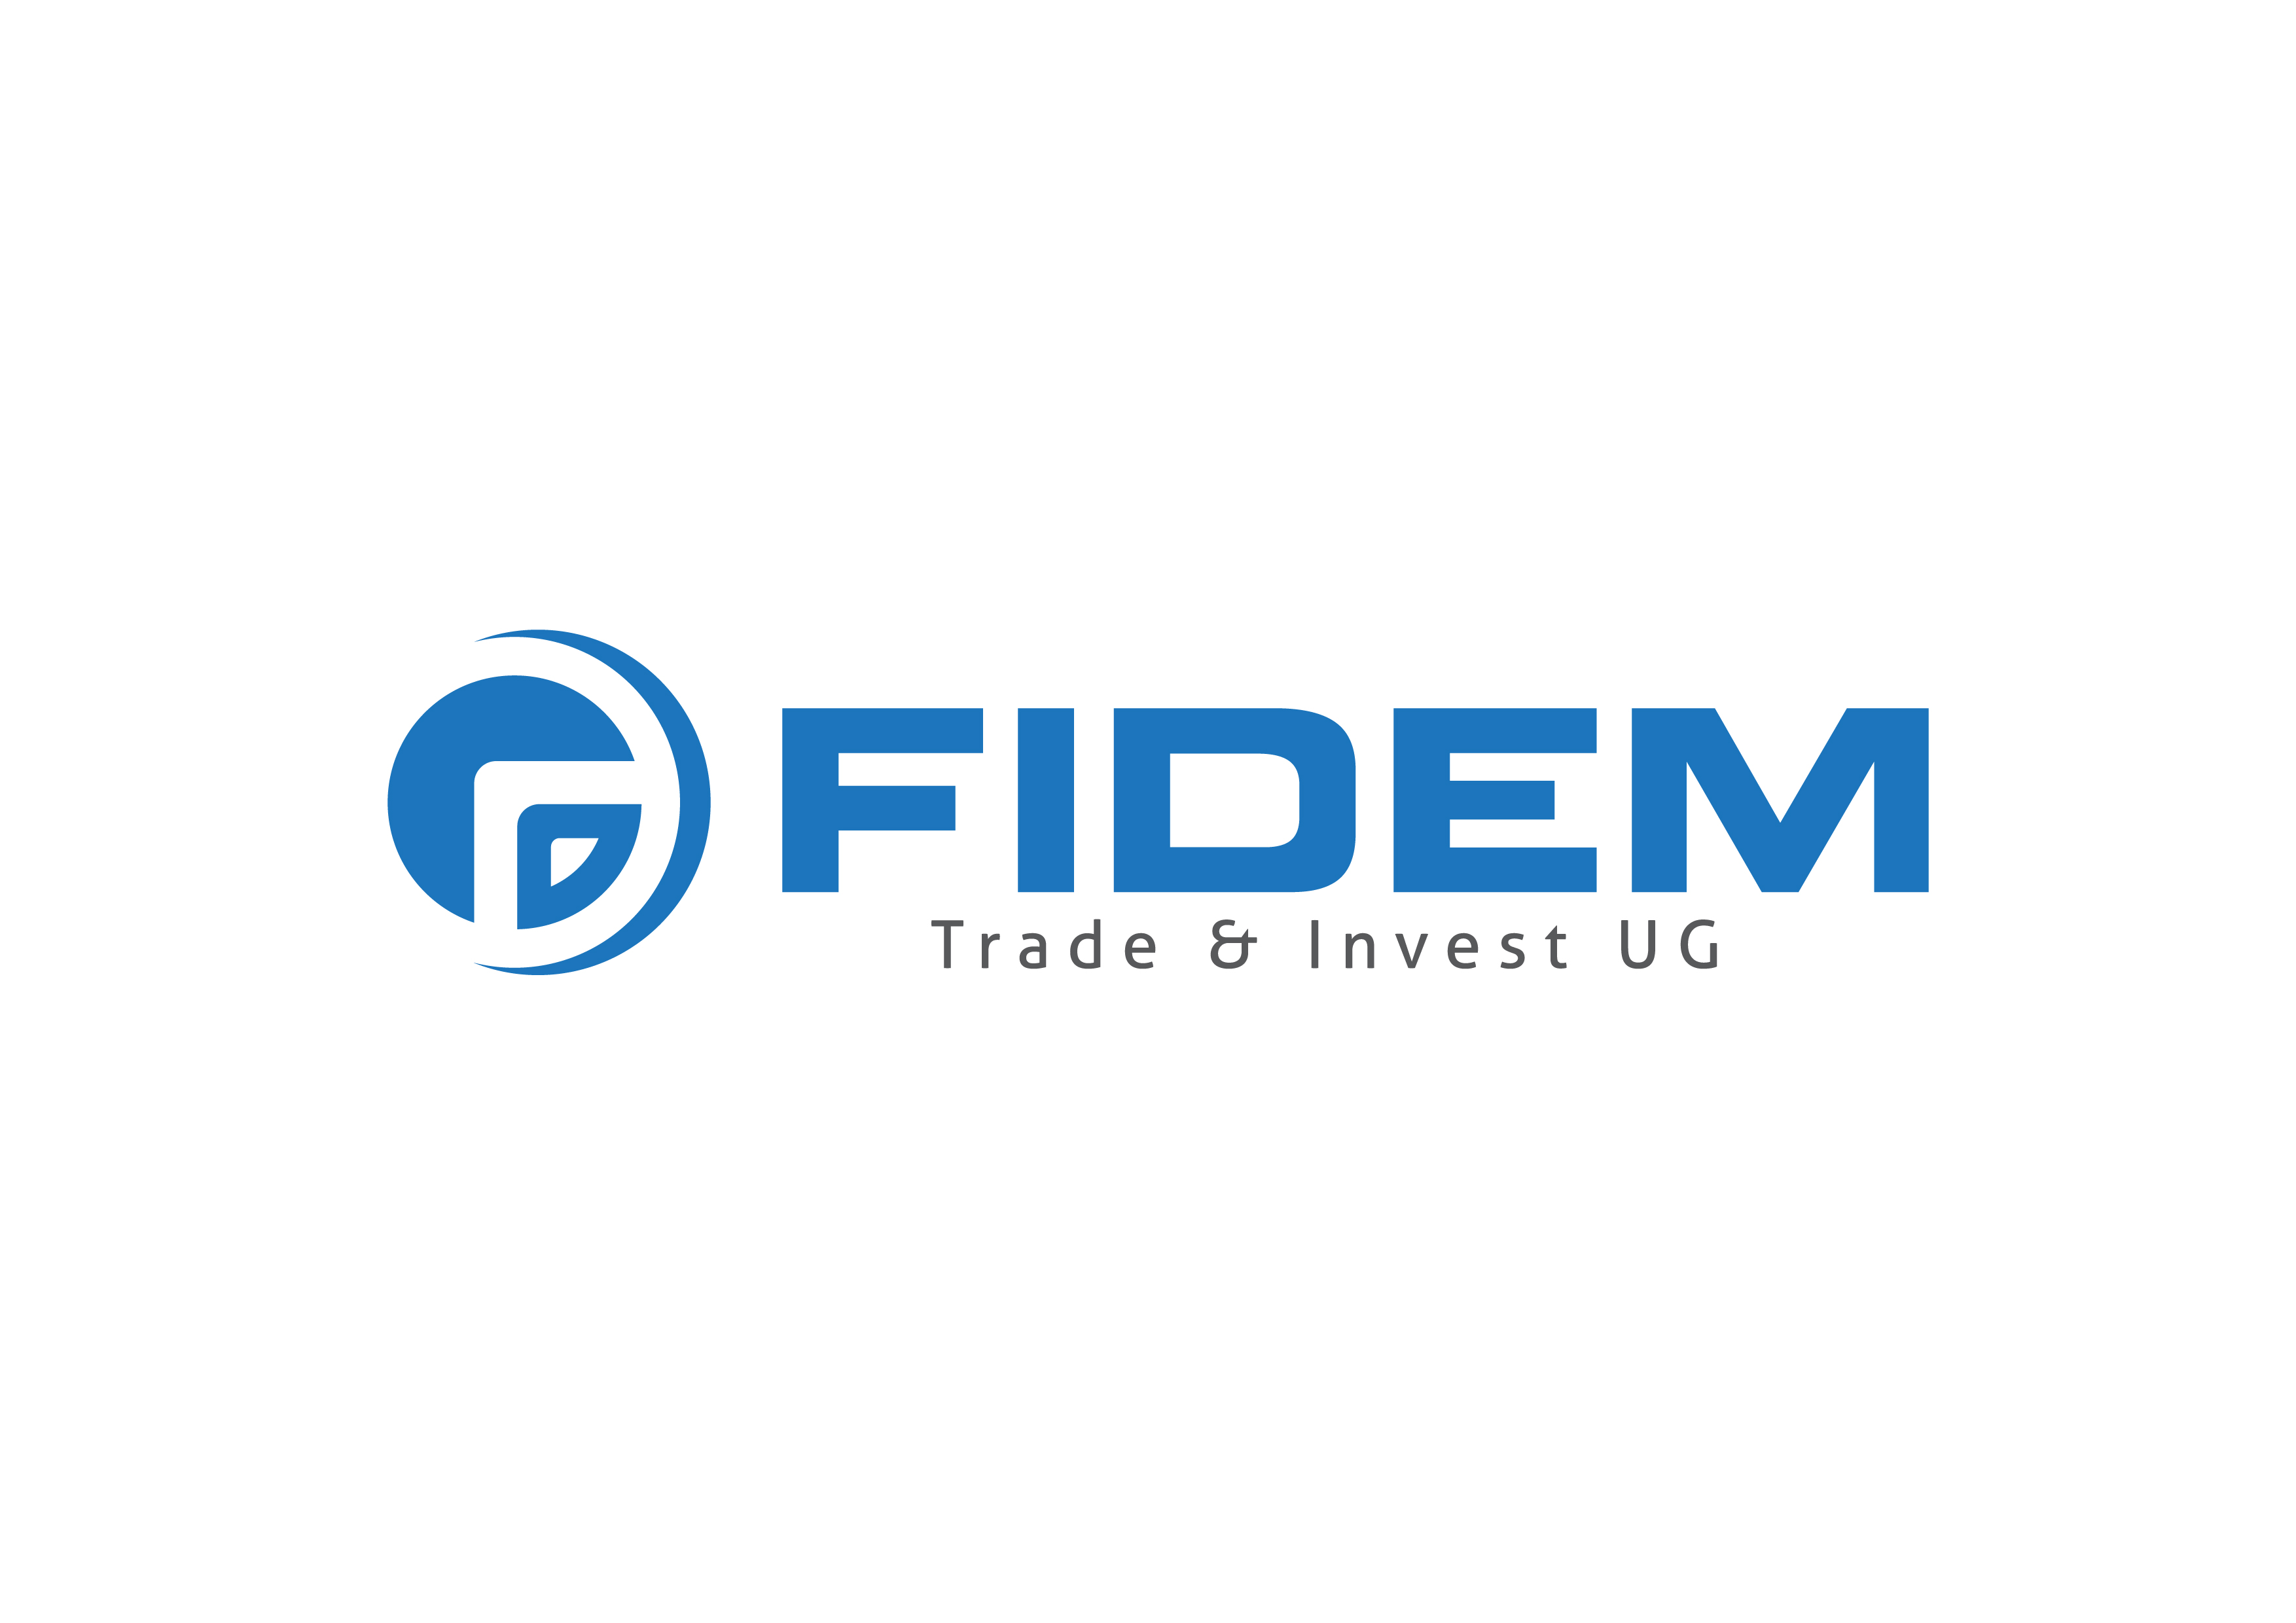 Logo Design by 3draw - Entry No. 489 in the Logo Design Contest Professional Logo Design for FIDEM Trade & Invest UG.